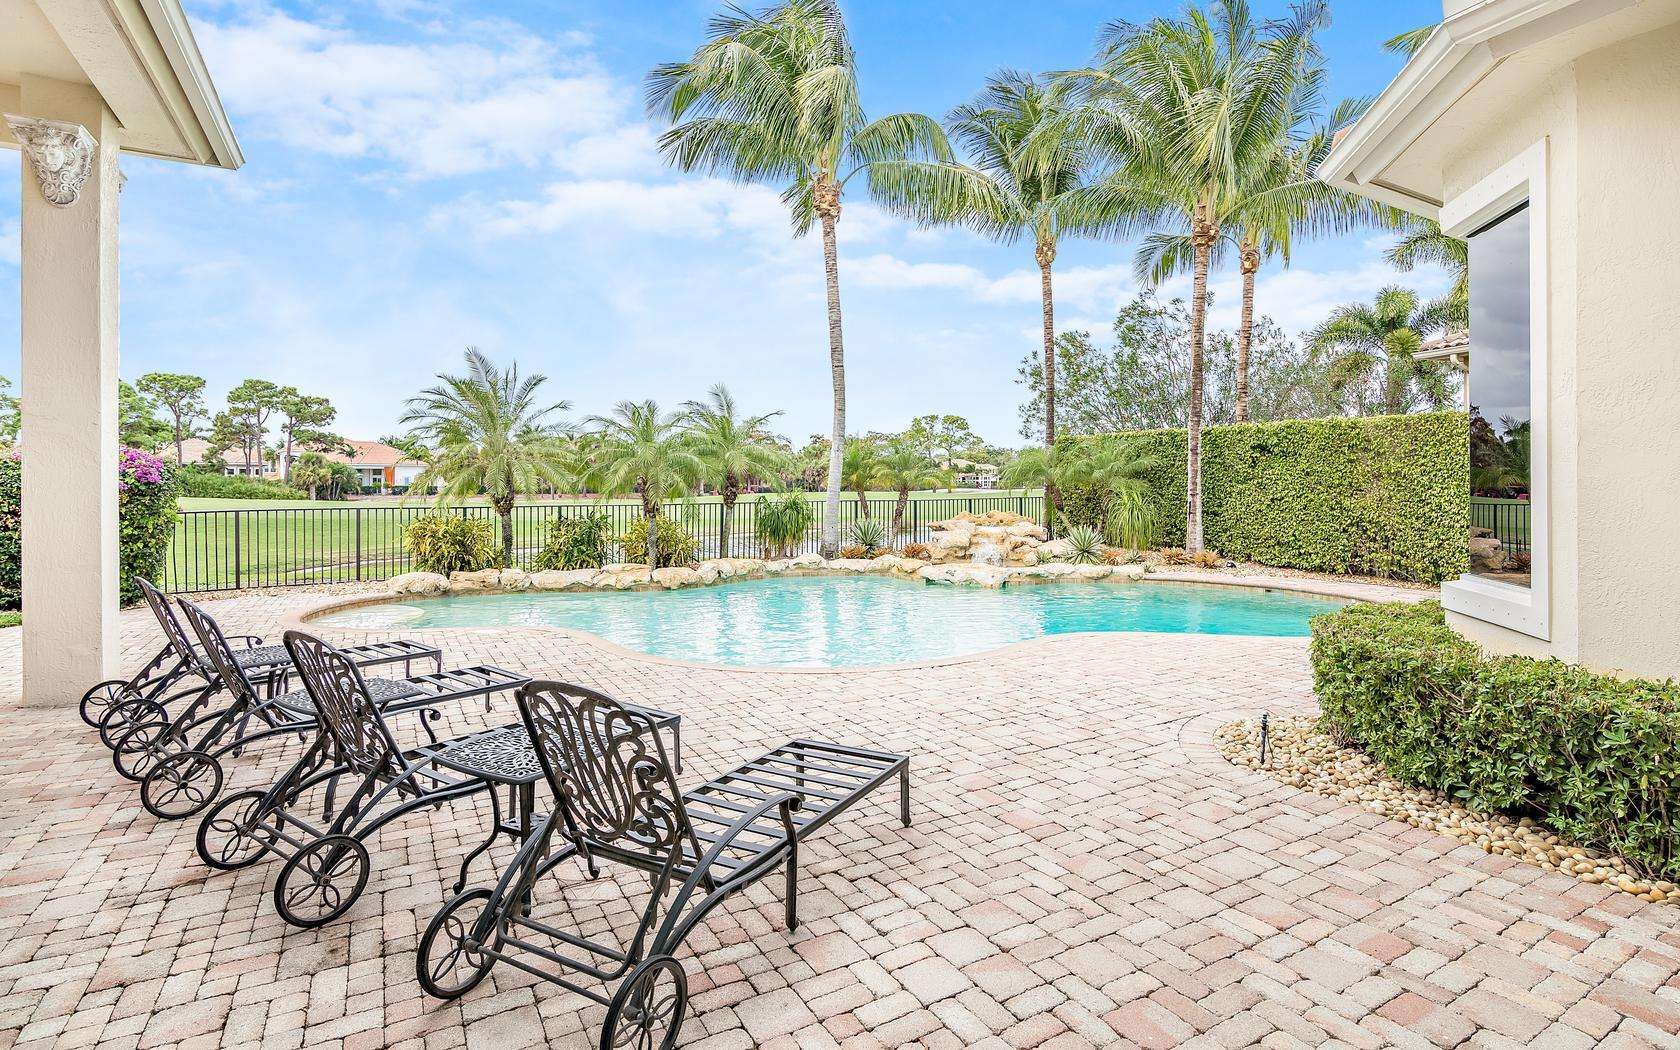 FRENCHMANS RESERVE PALM BEACH GARDENS REAL ESTATE